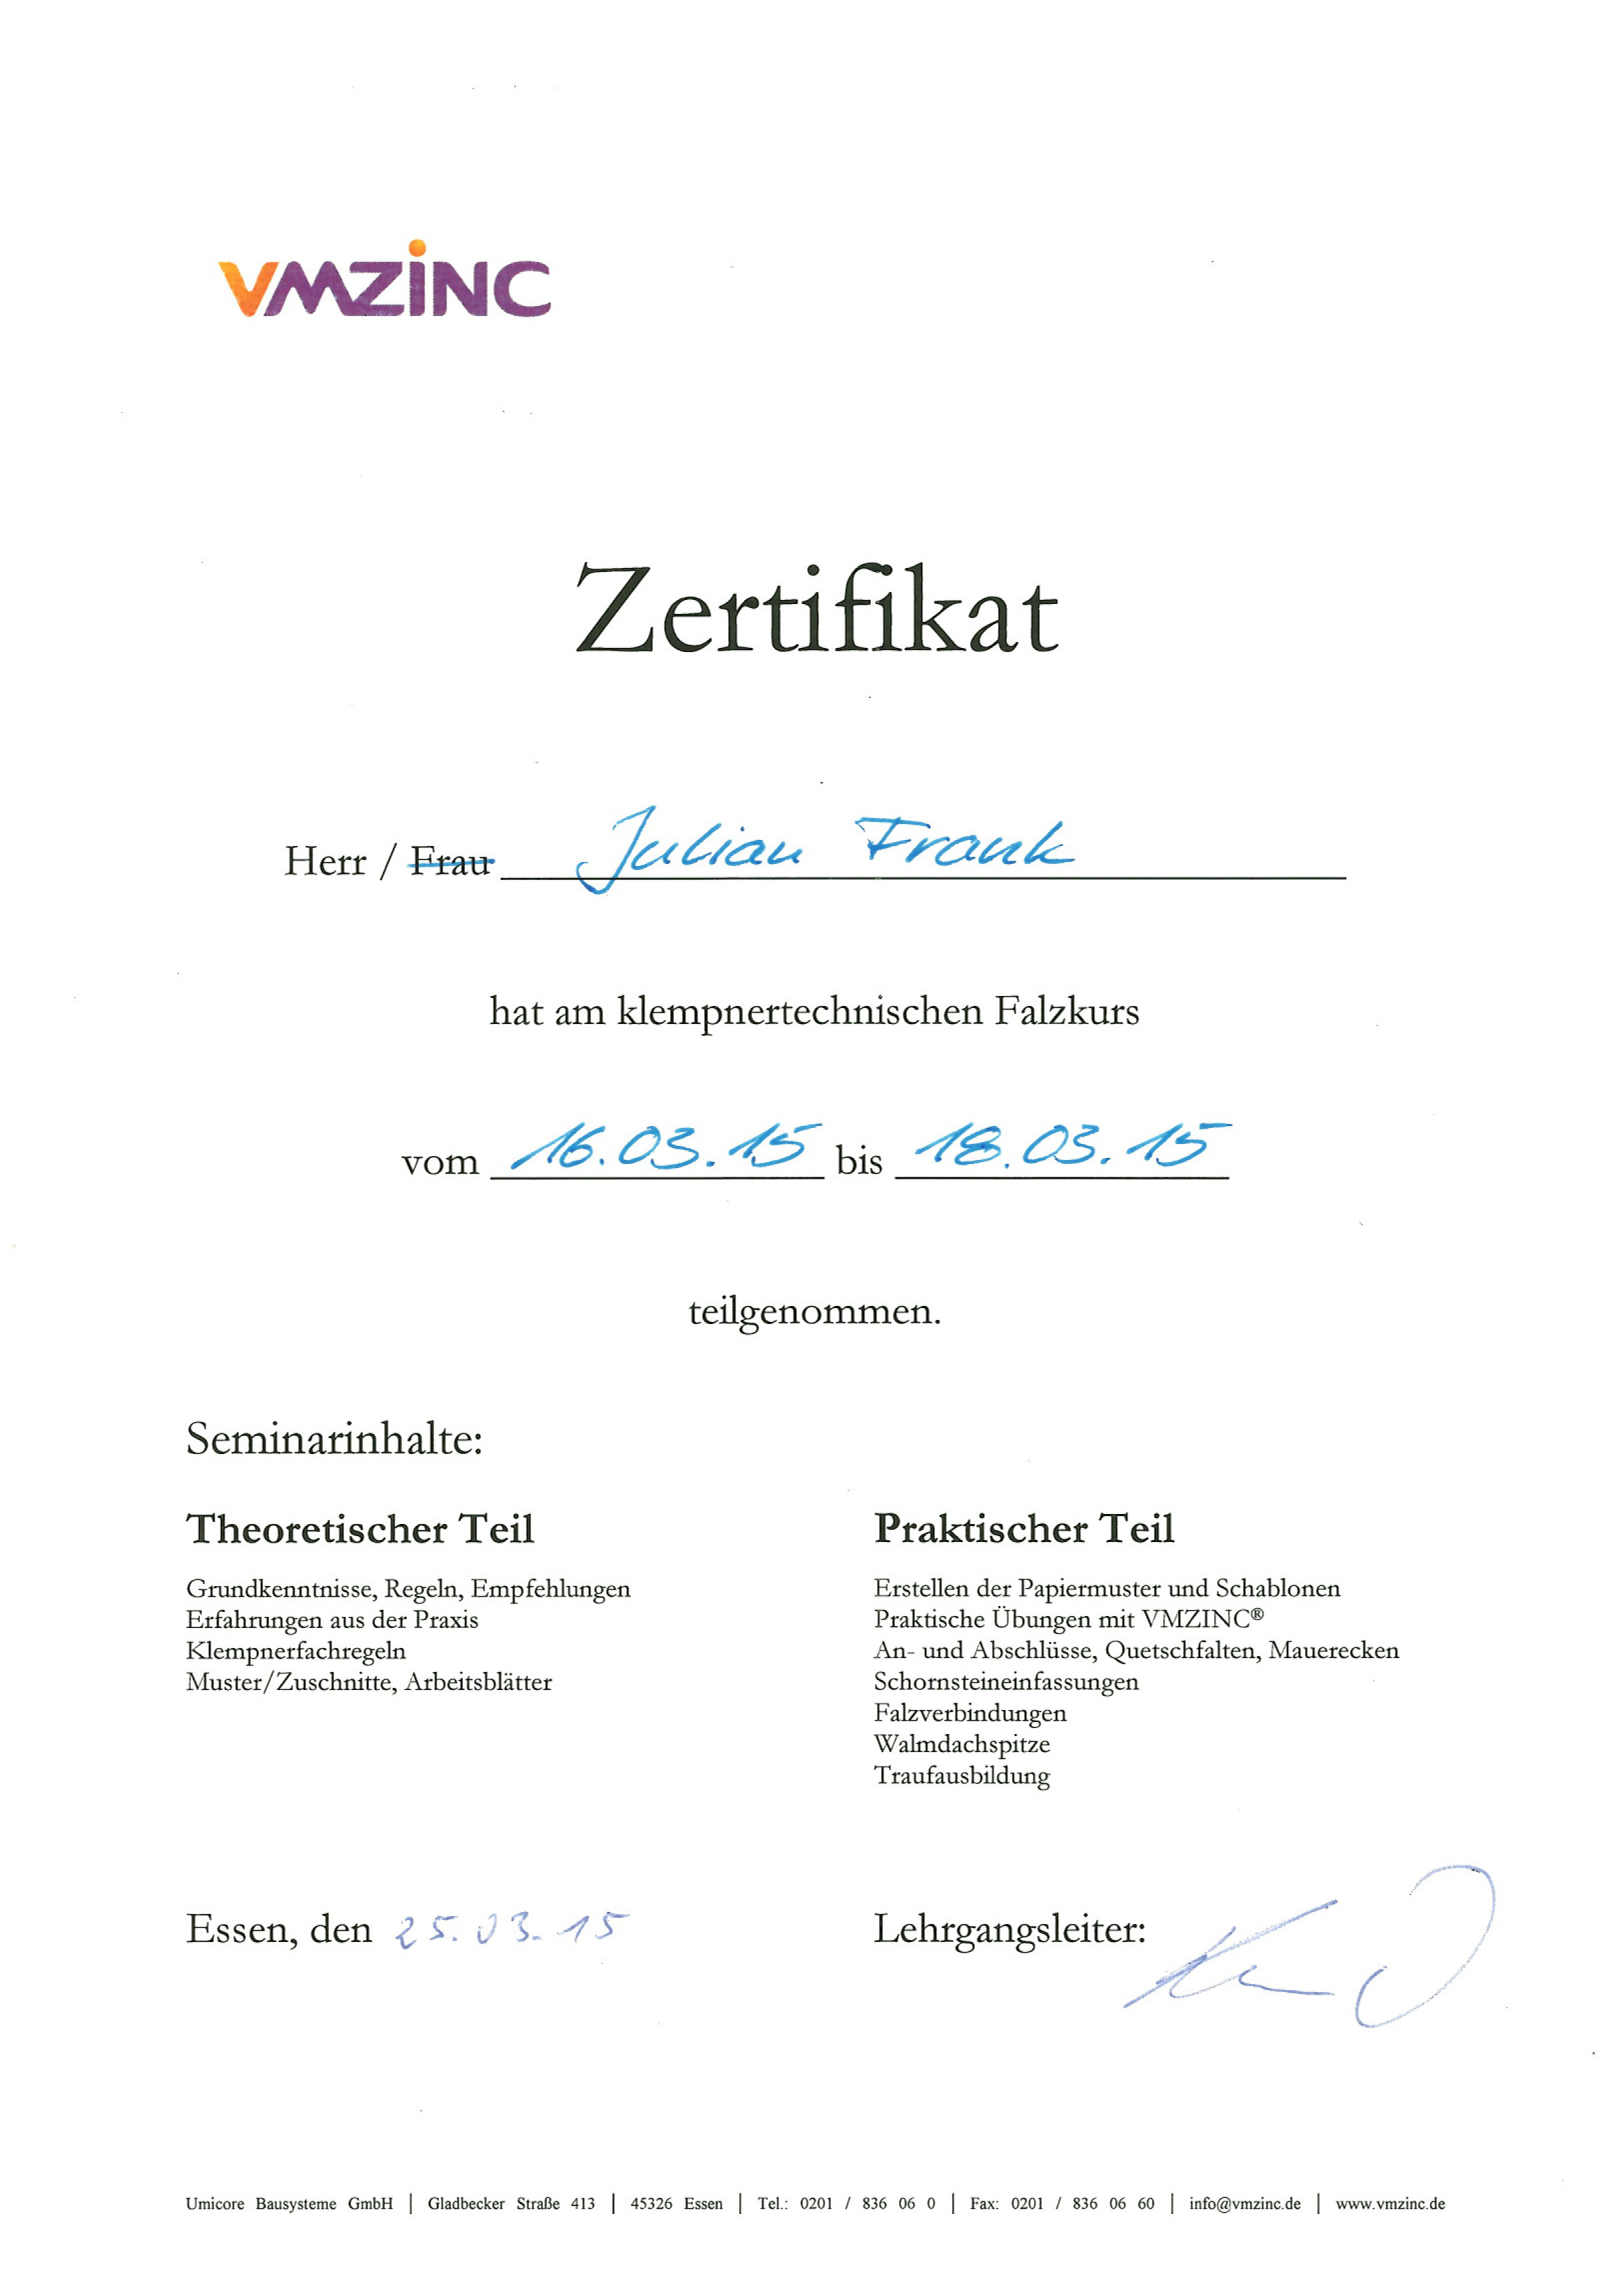 Beste Taufe Zertifikat Vorlage Wort Galerie - Entry Level Resume ...